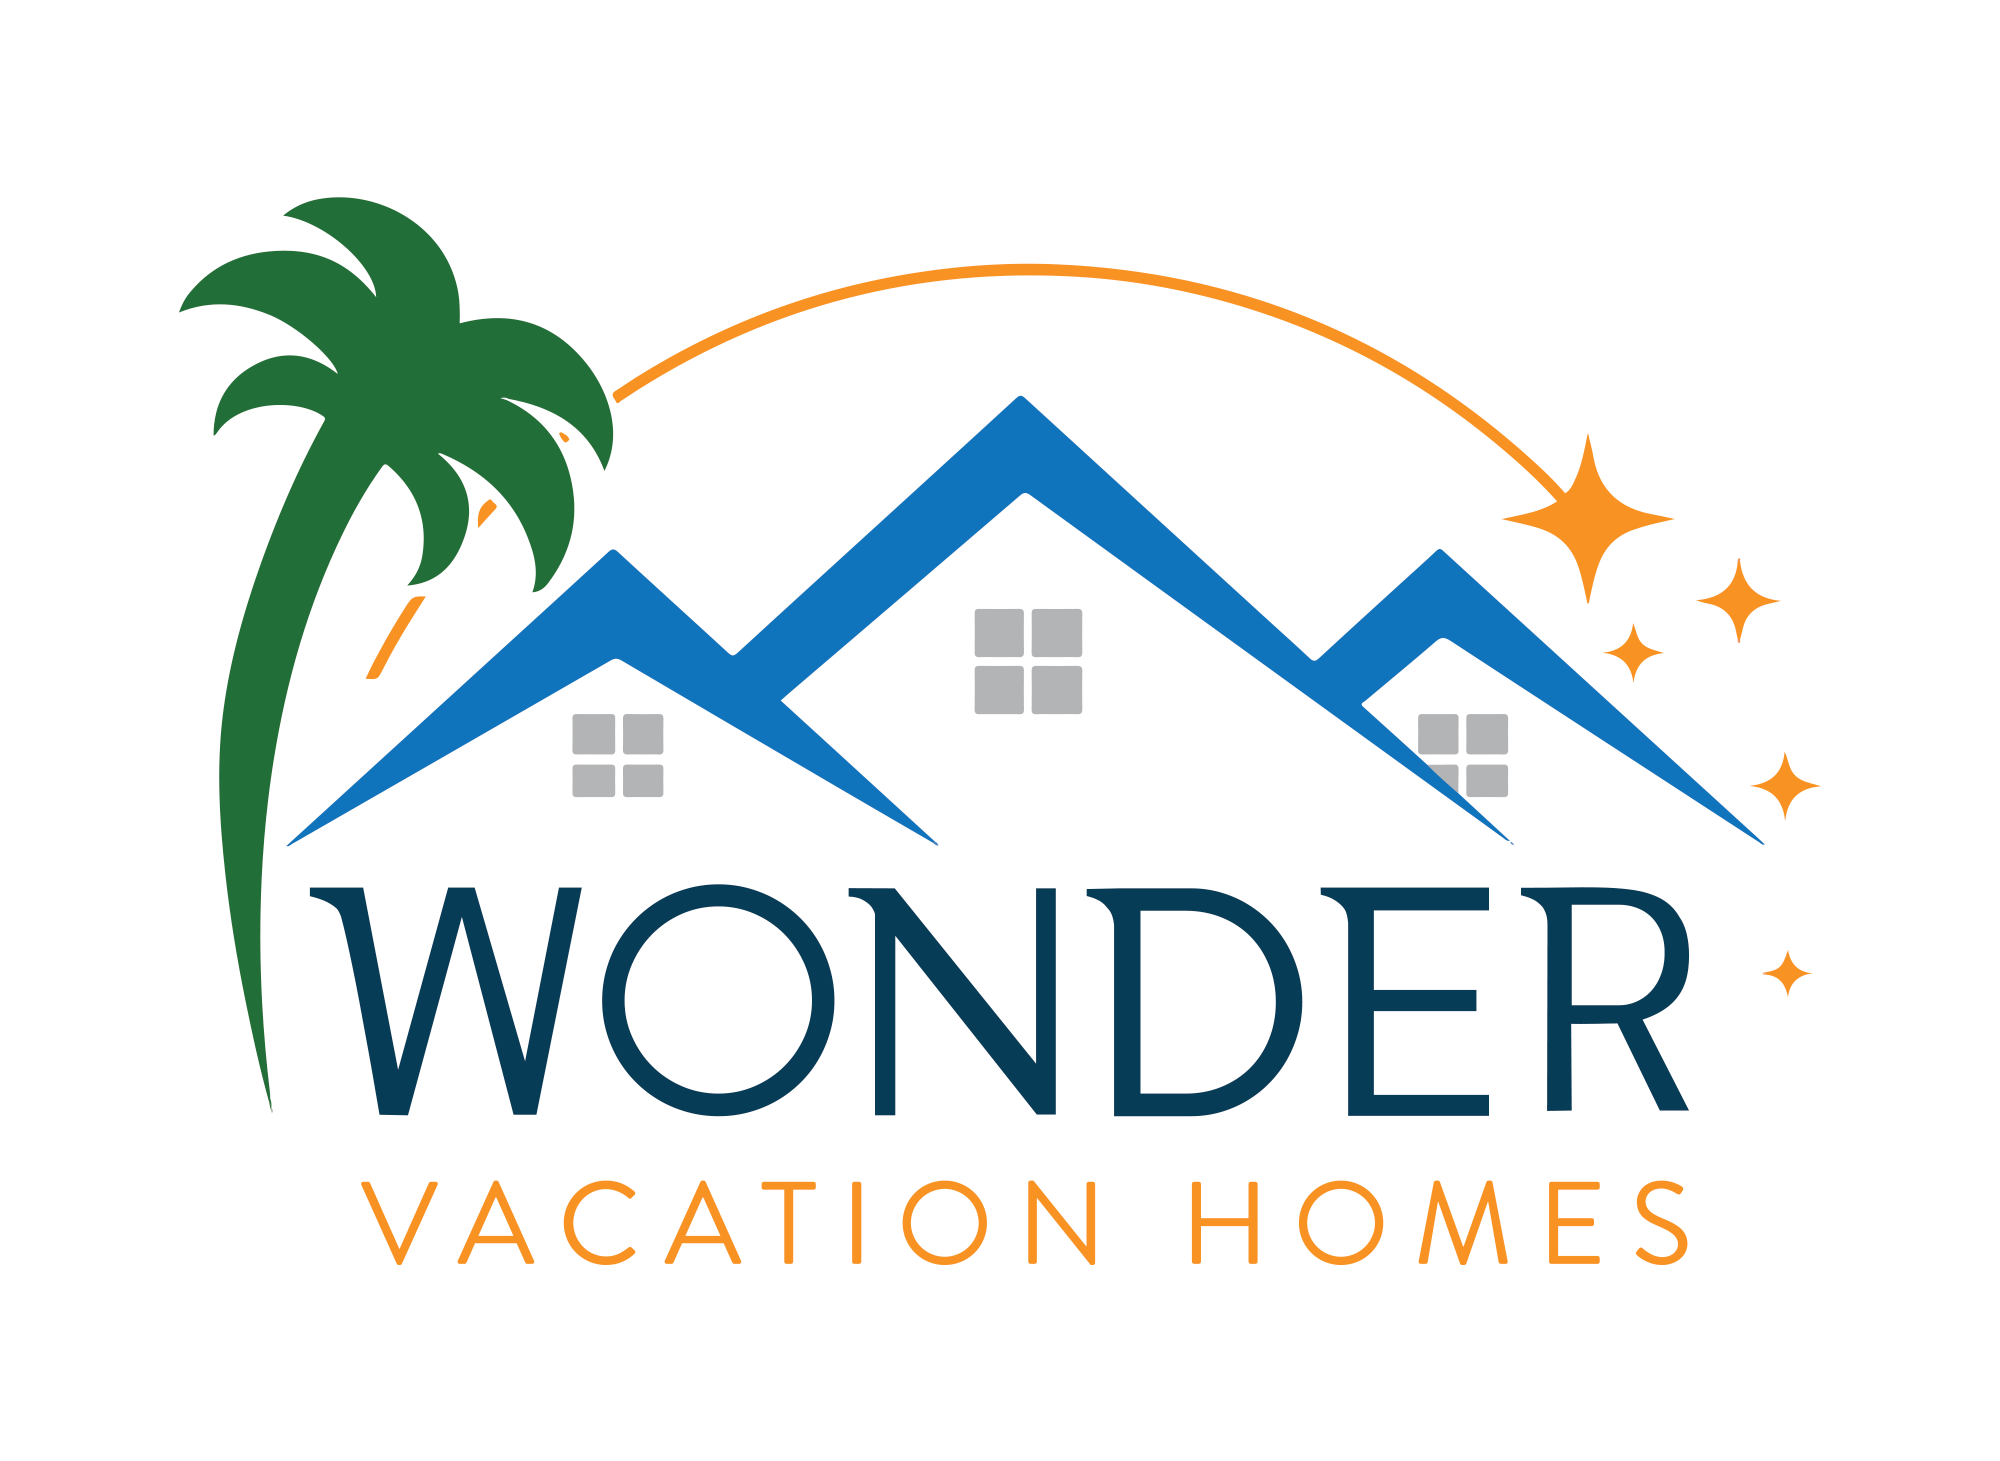 wonder-vacation-homes-clientes-agencia-diretriz-digital-marketing-fortaleza